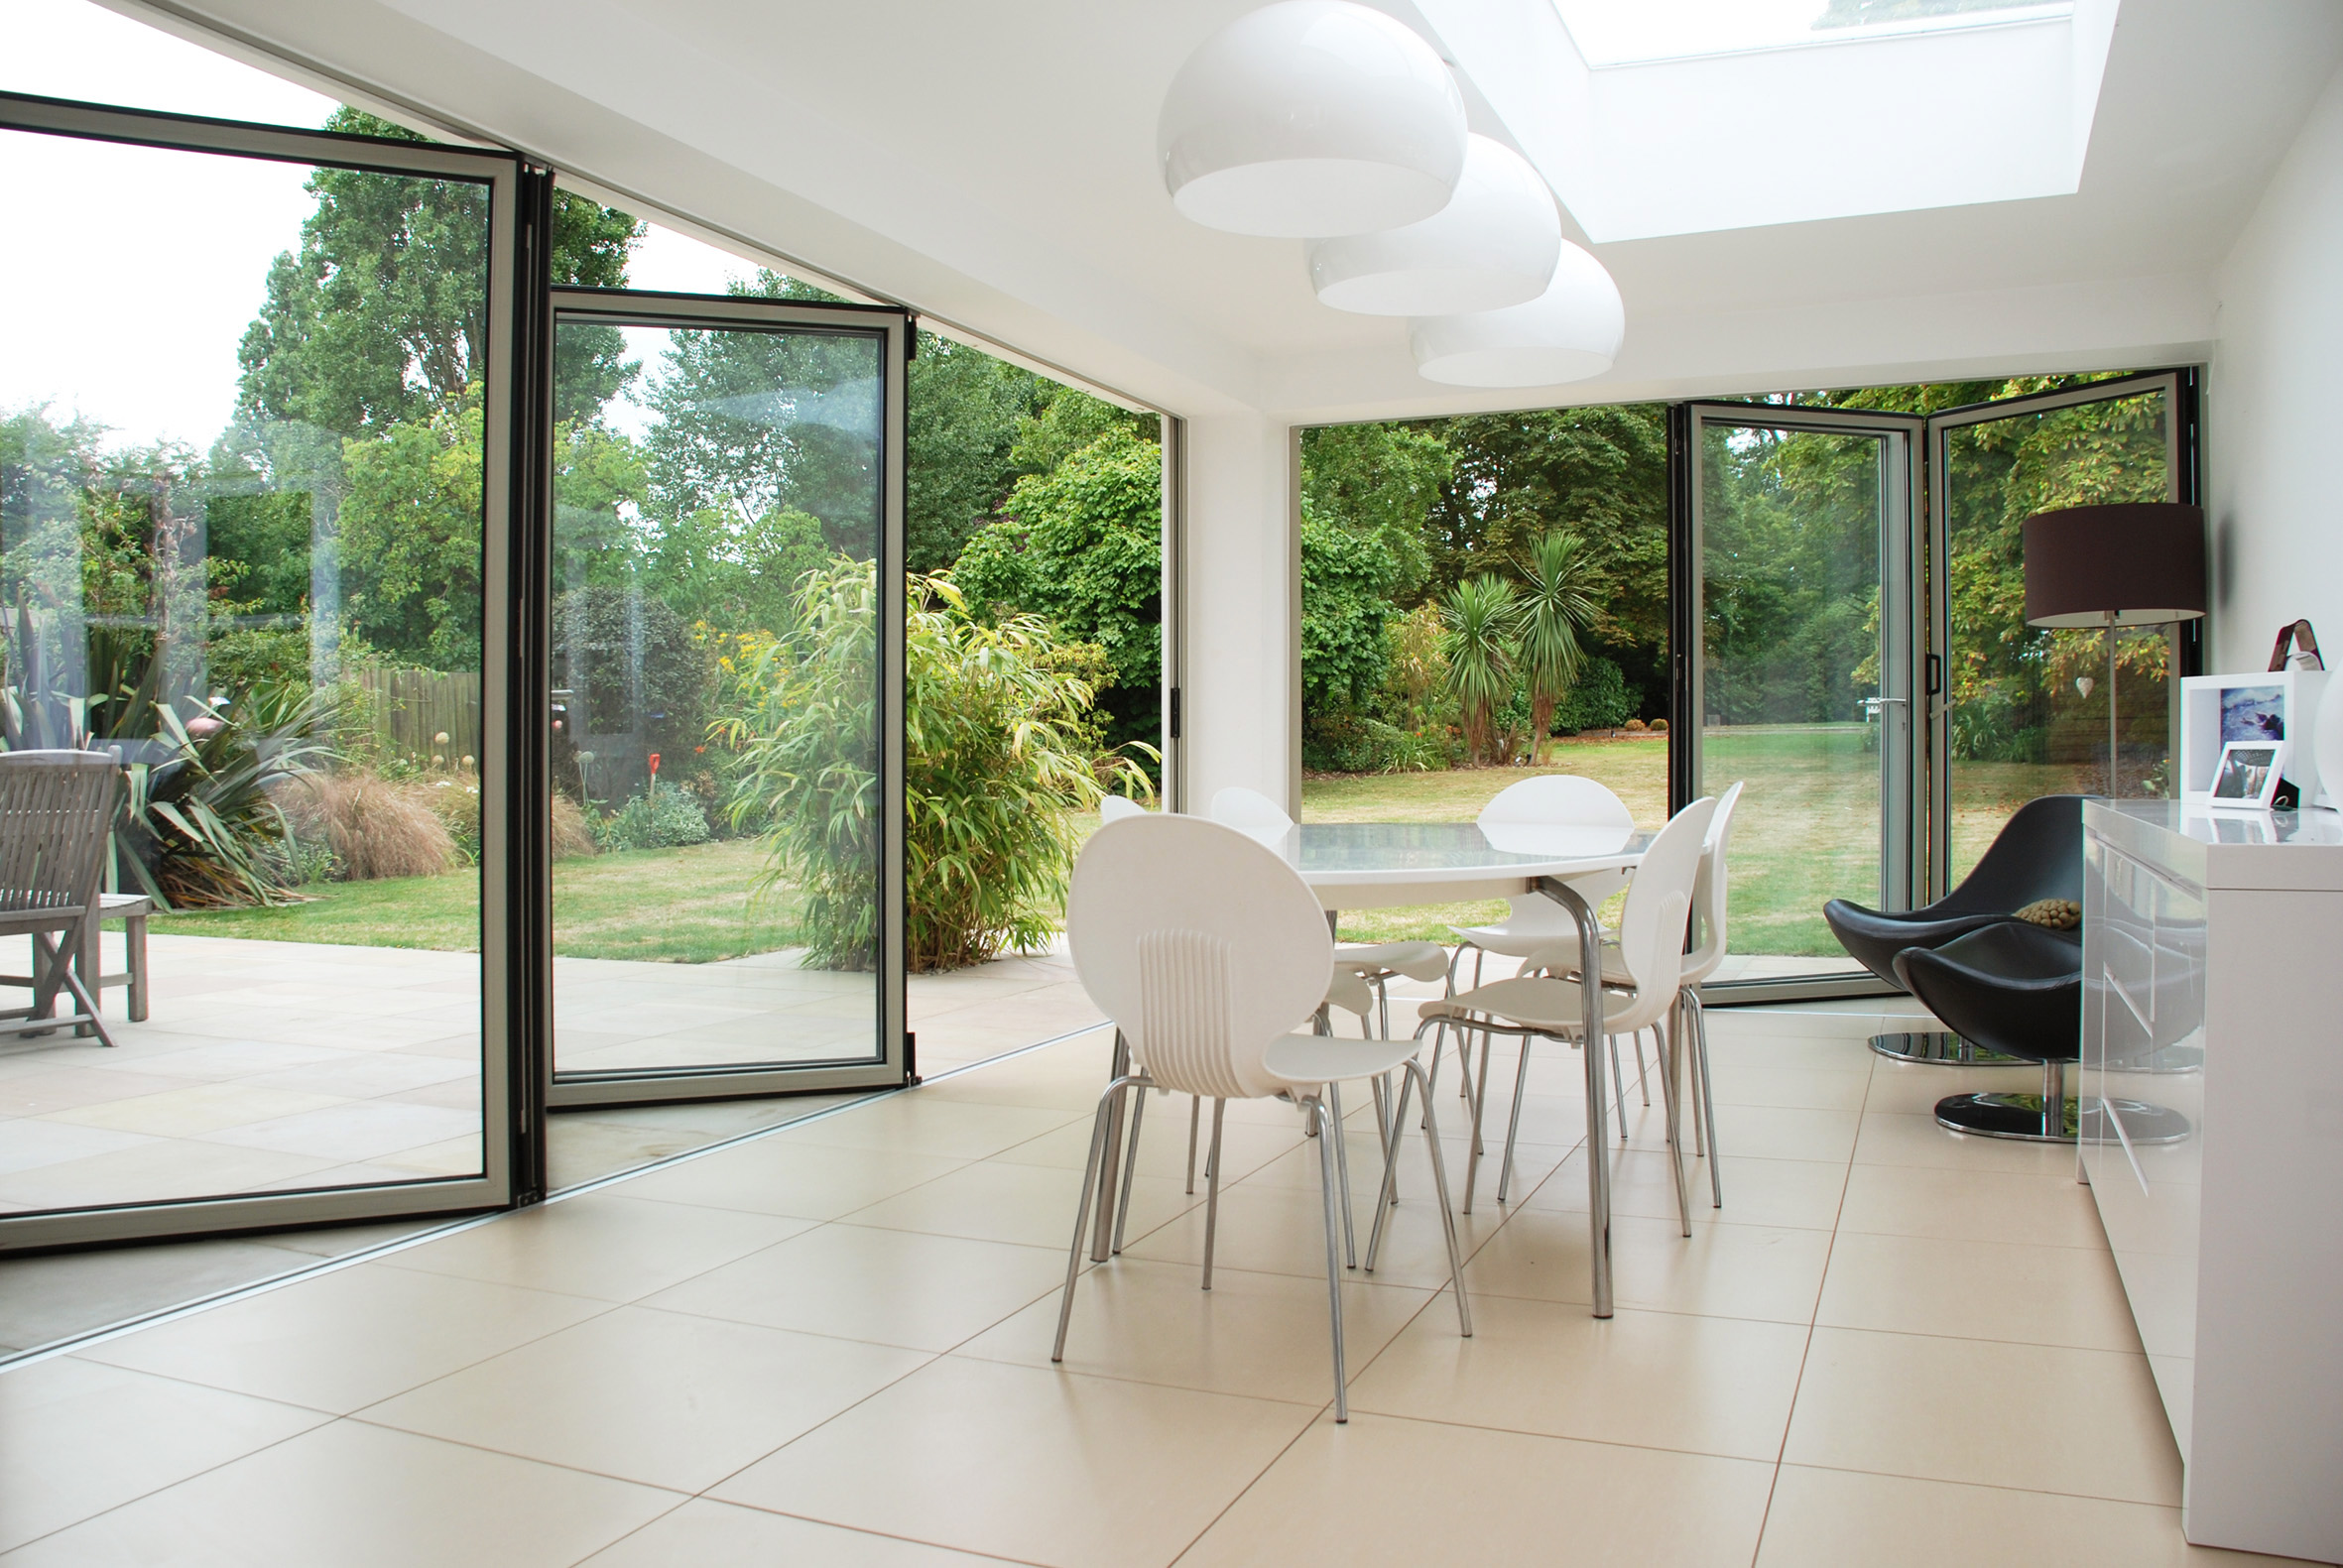 Aluminium Folding Sliding Doors 2362 x 1581